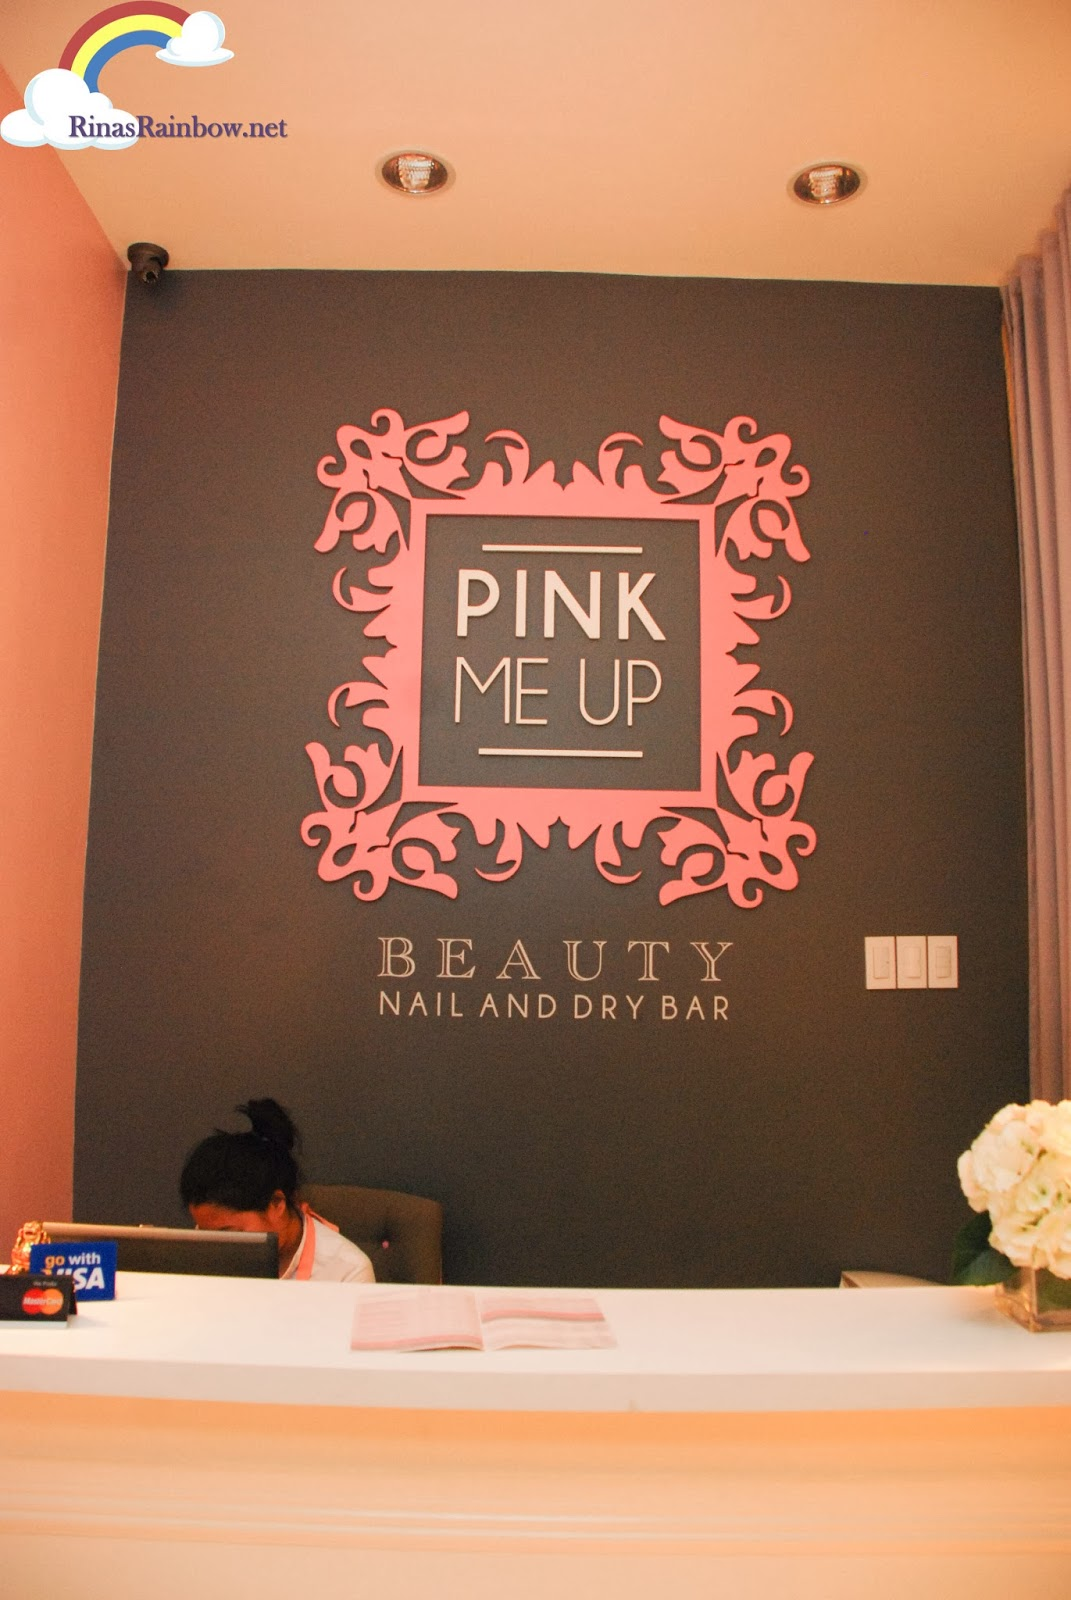 pink me up beauty nail and dry spa